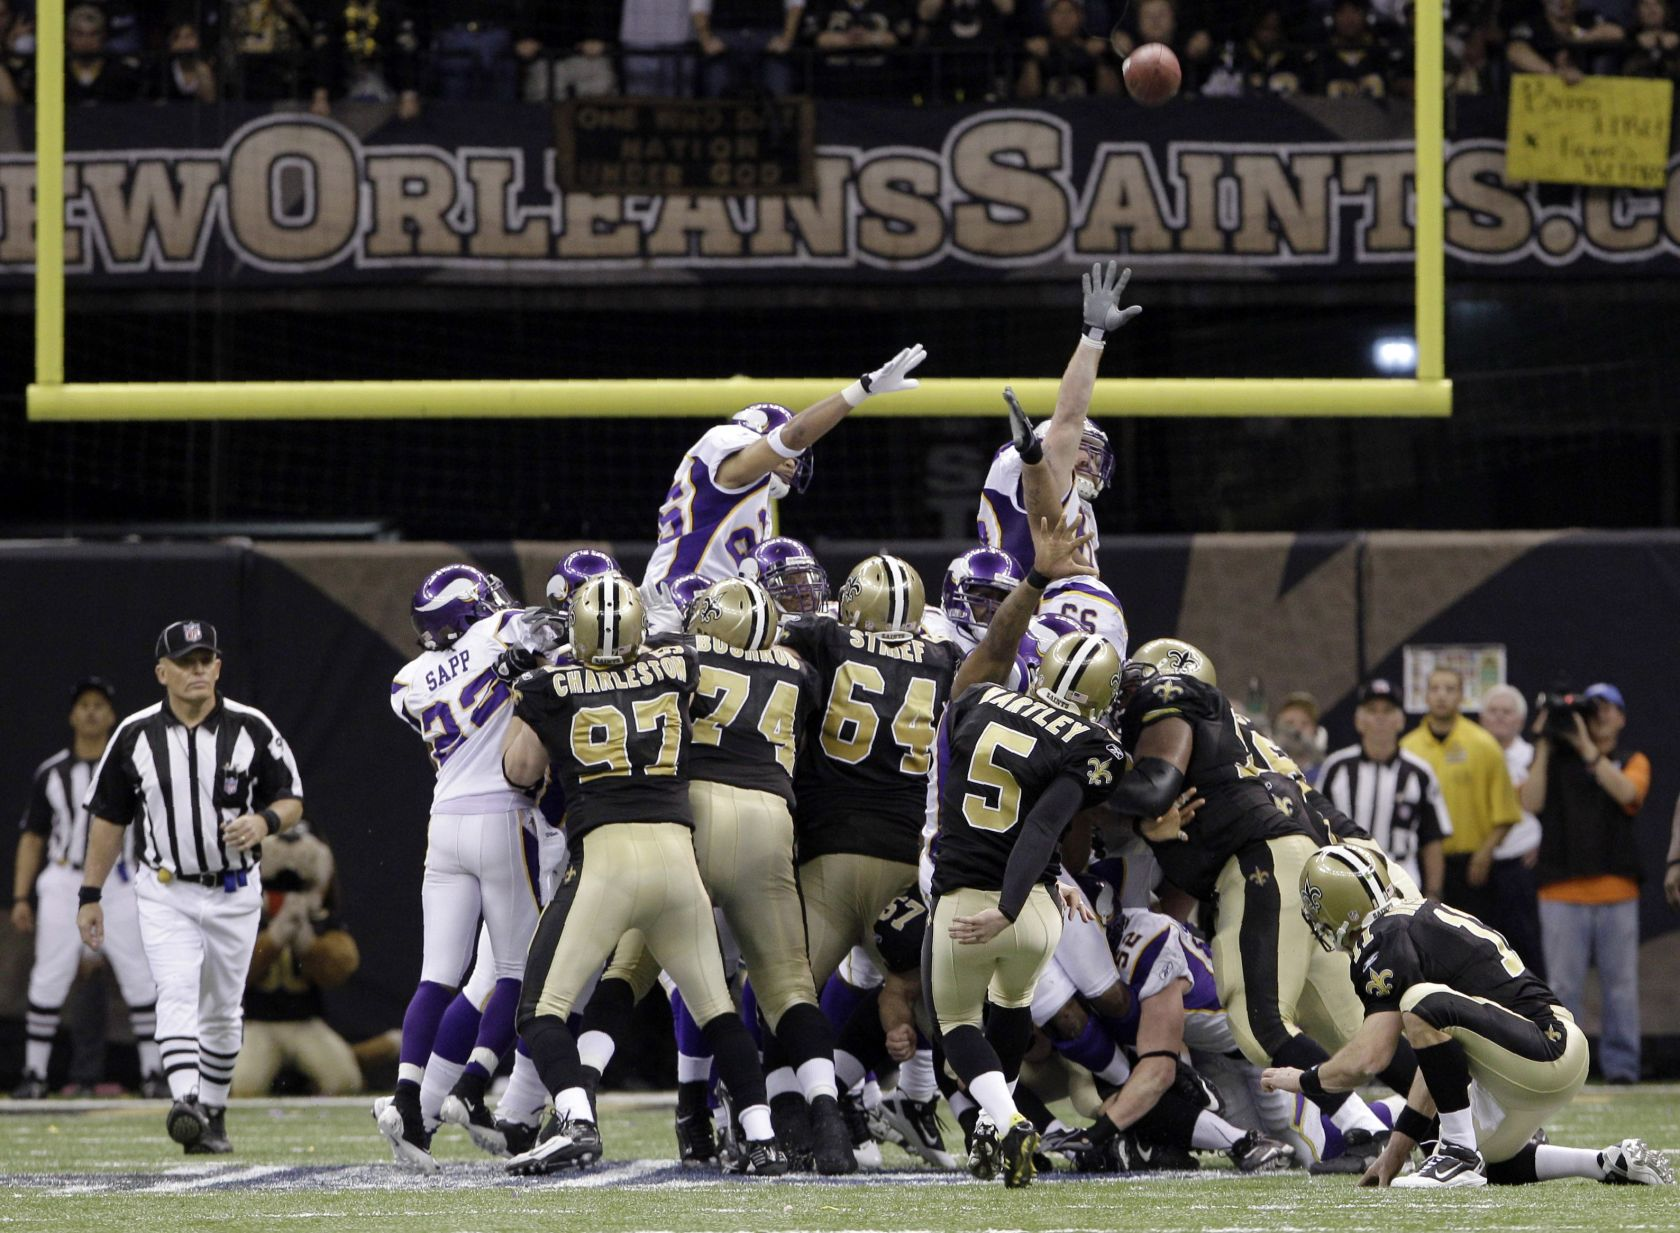 For Garrett Hartley, a fall came after his Saints heroics, but he